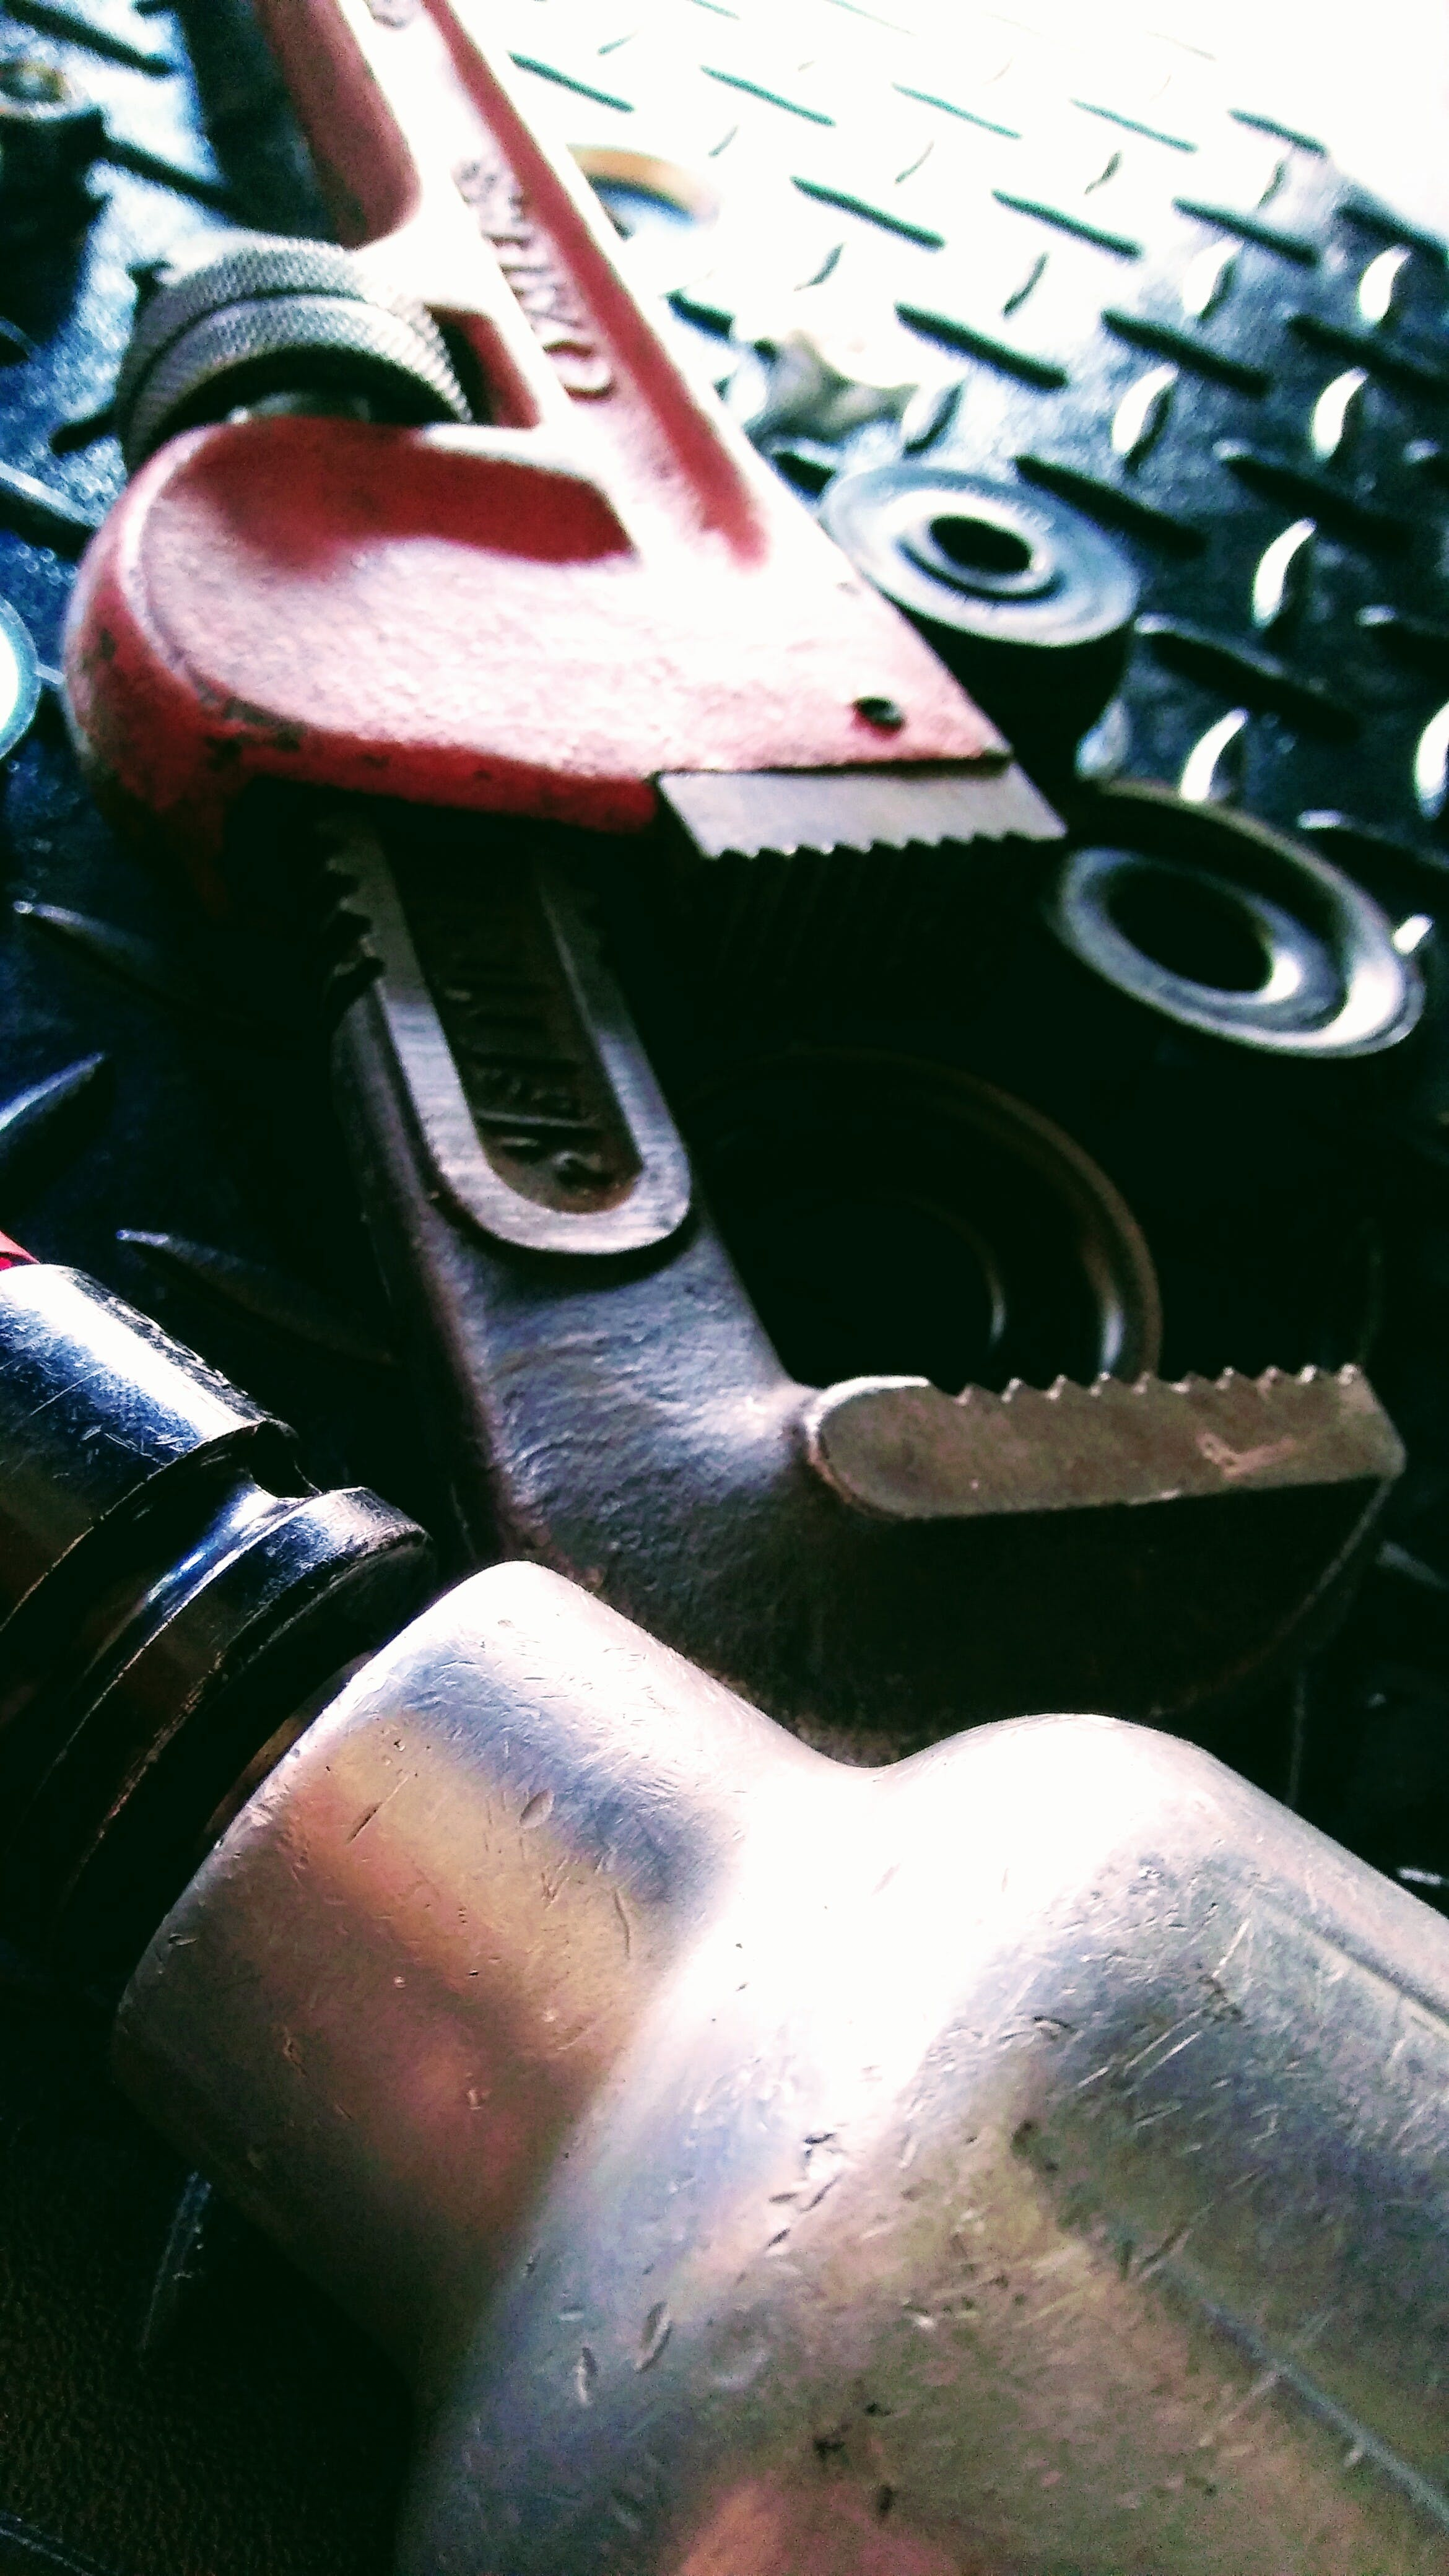 Free stock photo of auto, drill, industrial, mechanic